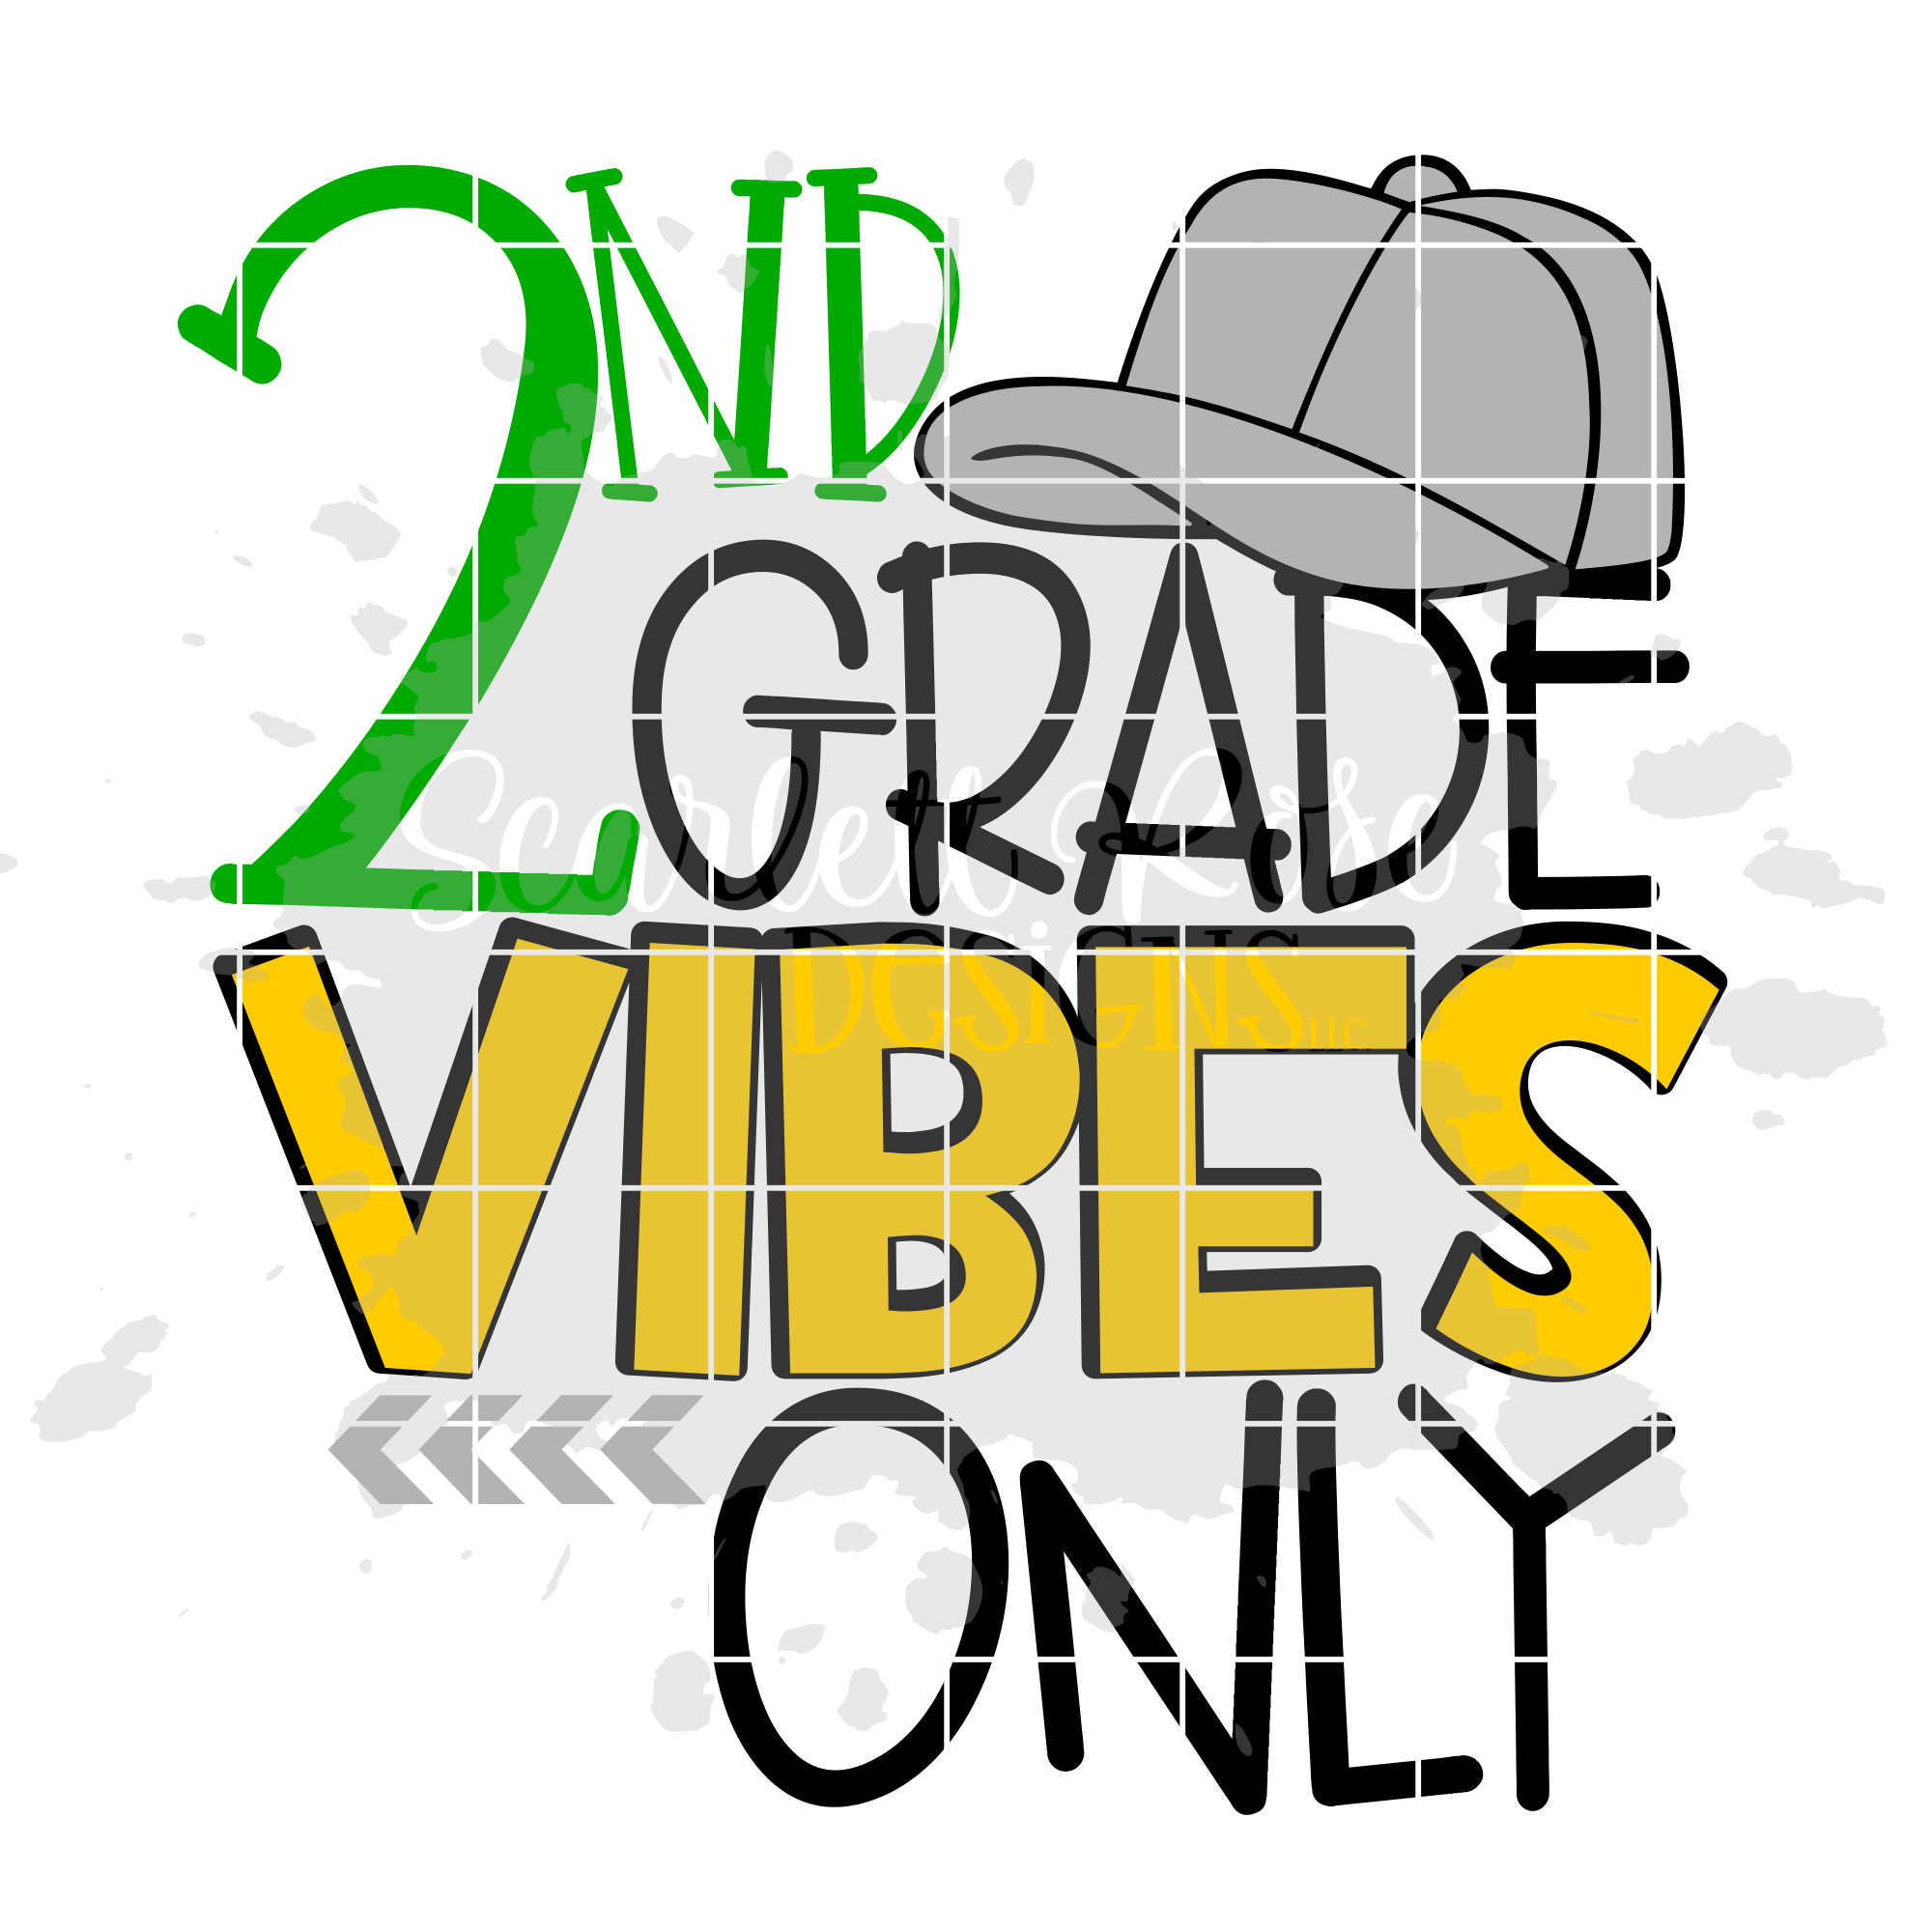 2000x2000 2nd Grade Vibes Only Svg, School Svg Cut File For Cricut And Cameo